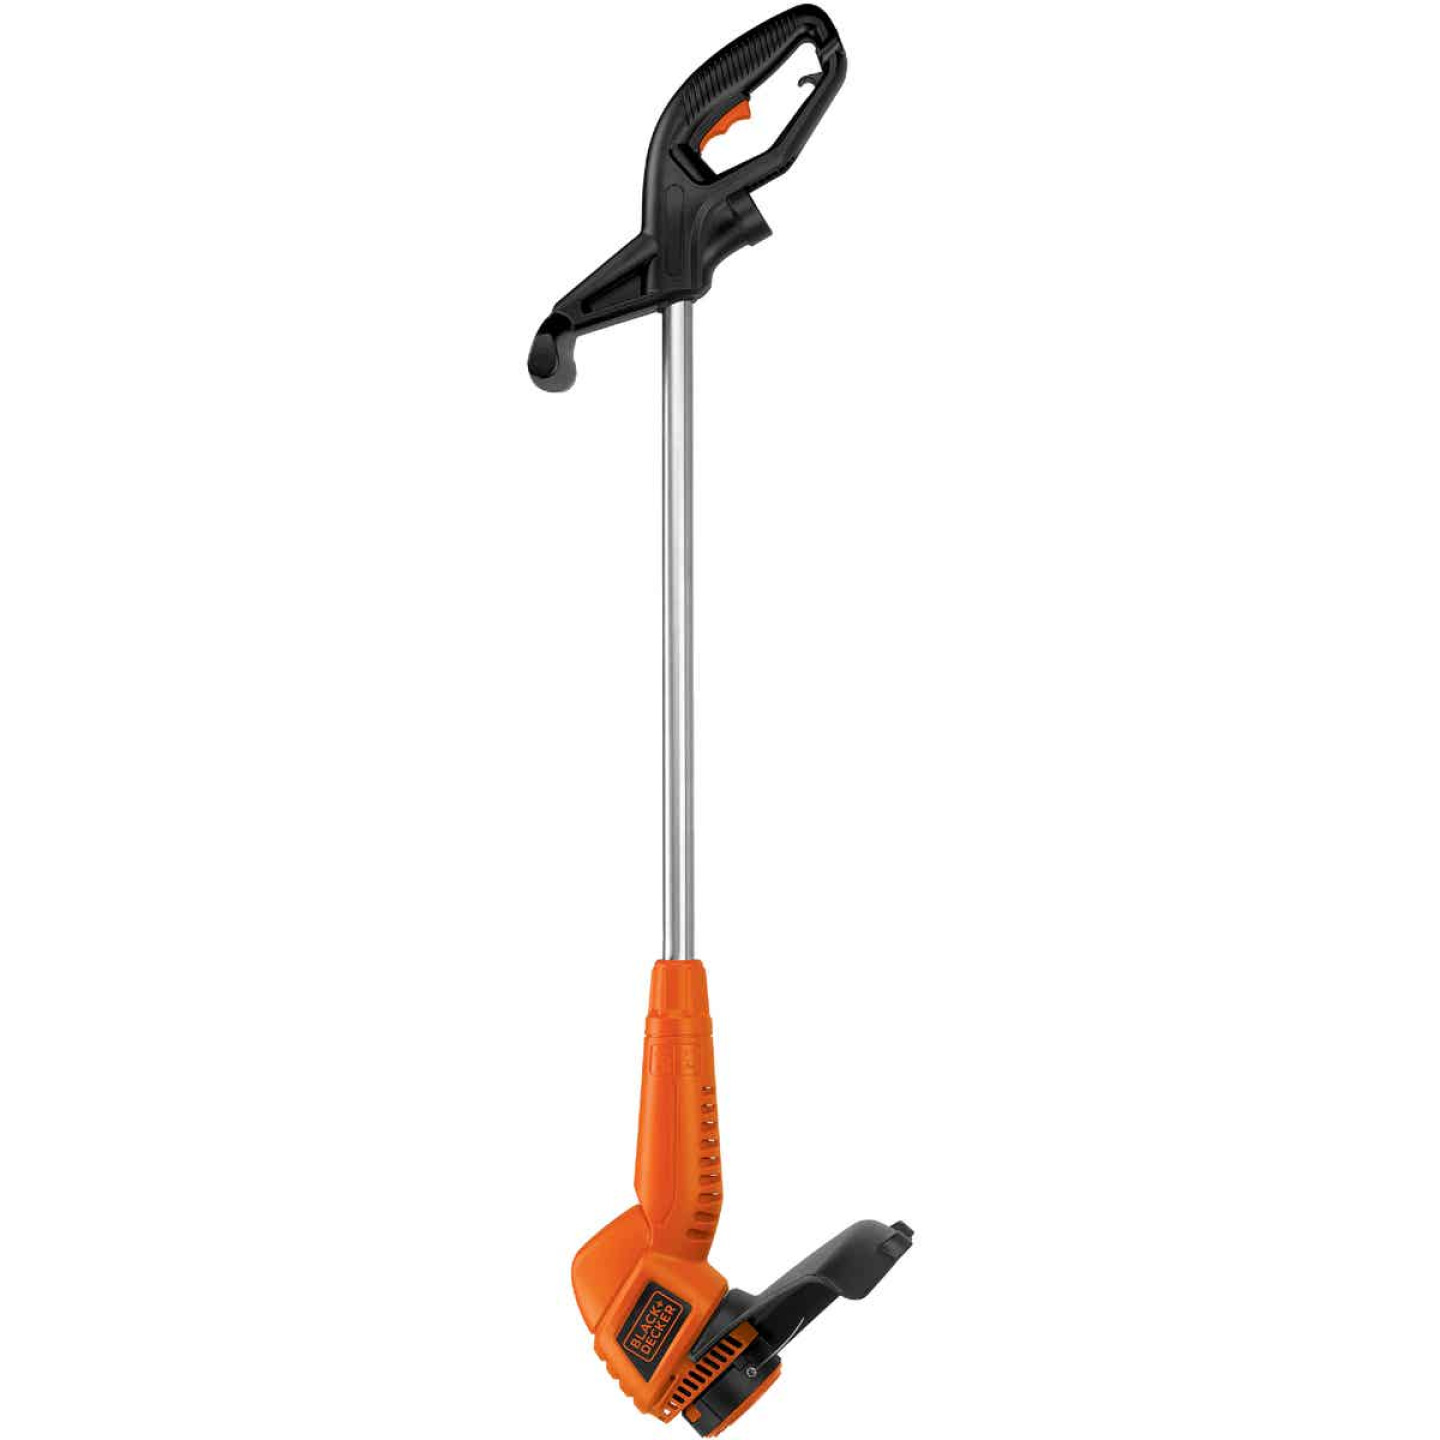 Black & Decker 13 In. 4.4-Amp Straight Shaft Corded Electric String Trimmer Edger Image 7